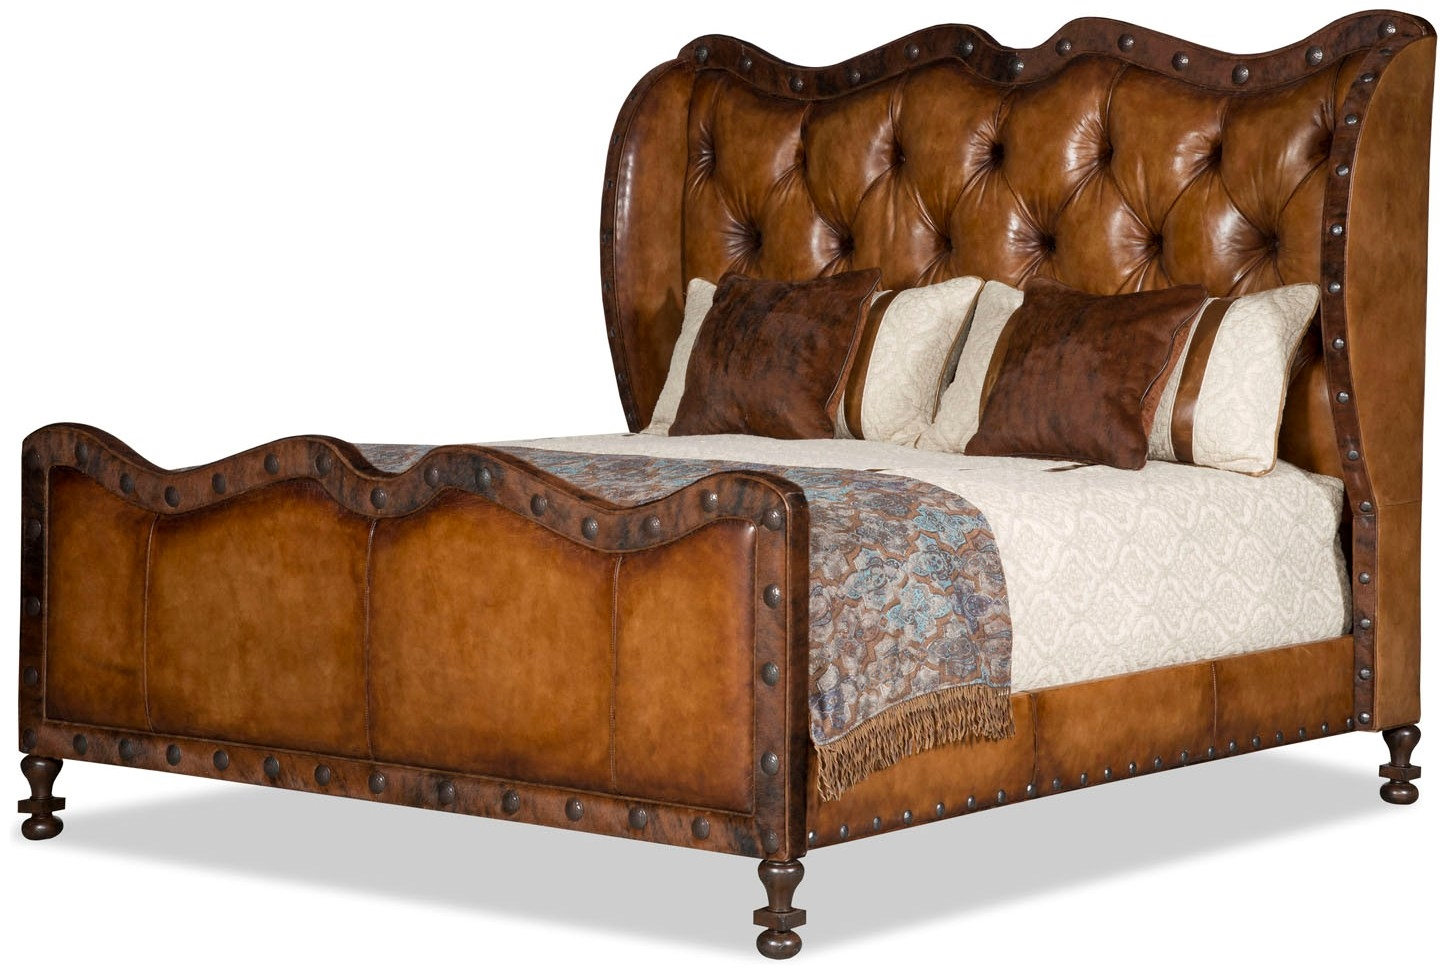 Sundance Tufted Leather Western Master Bed